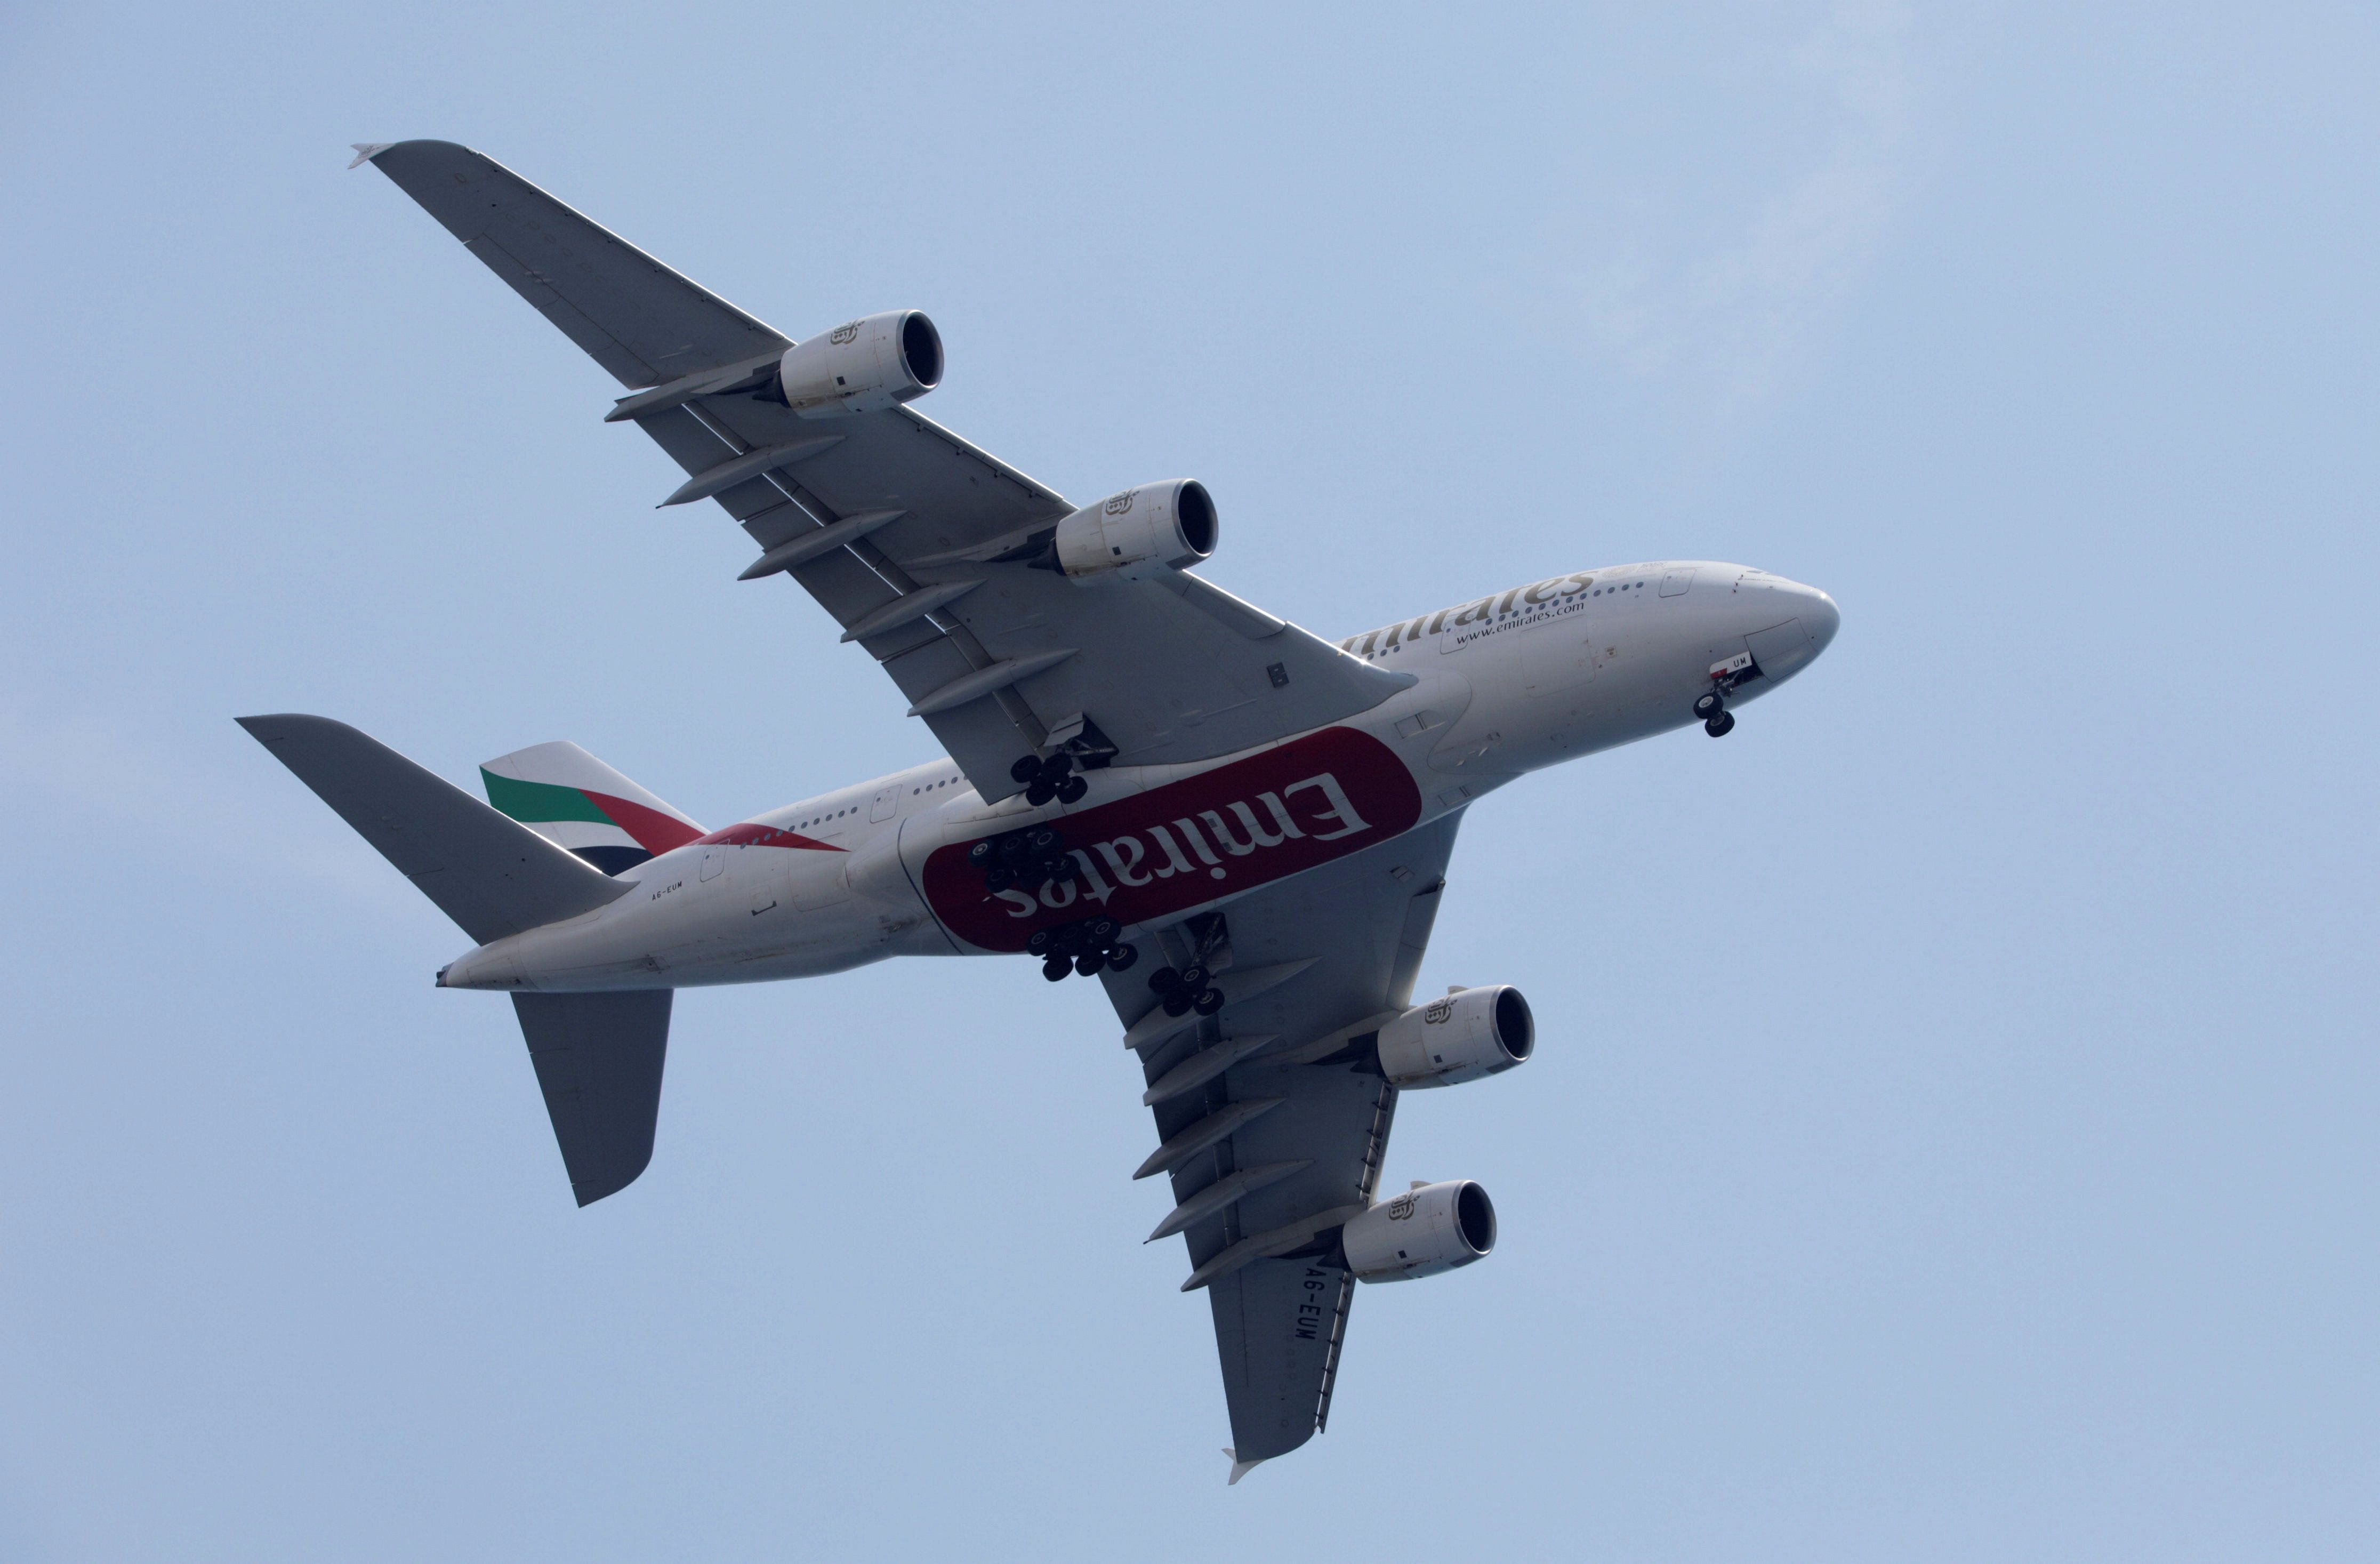 Emirates Flight Lands At JFK Airport With 'Dozens' Of Sick